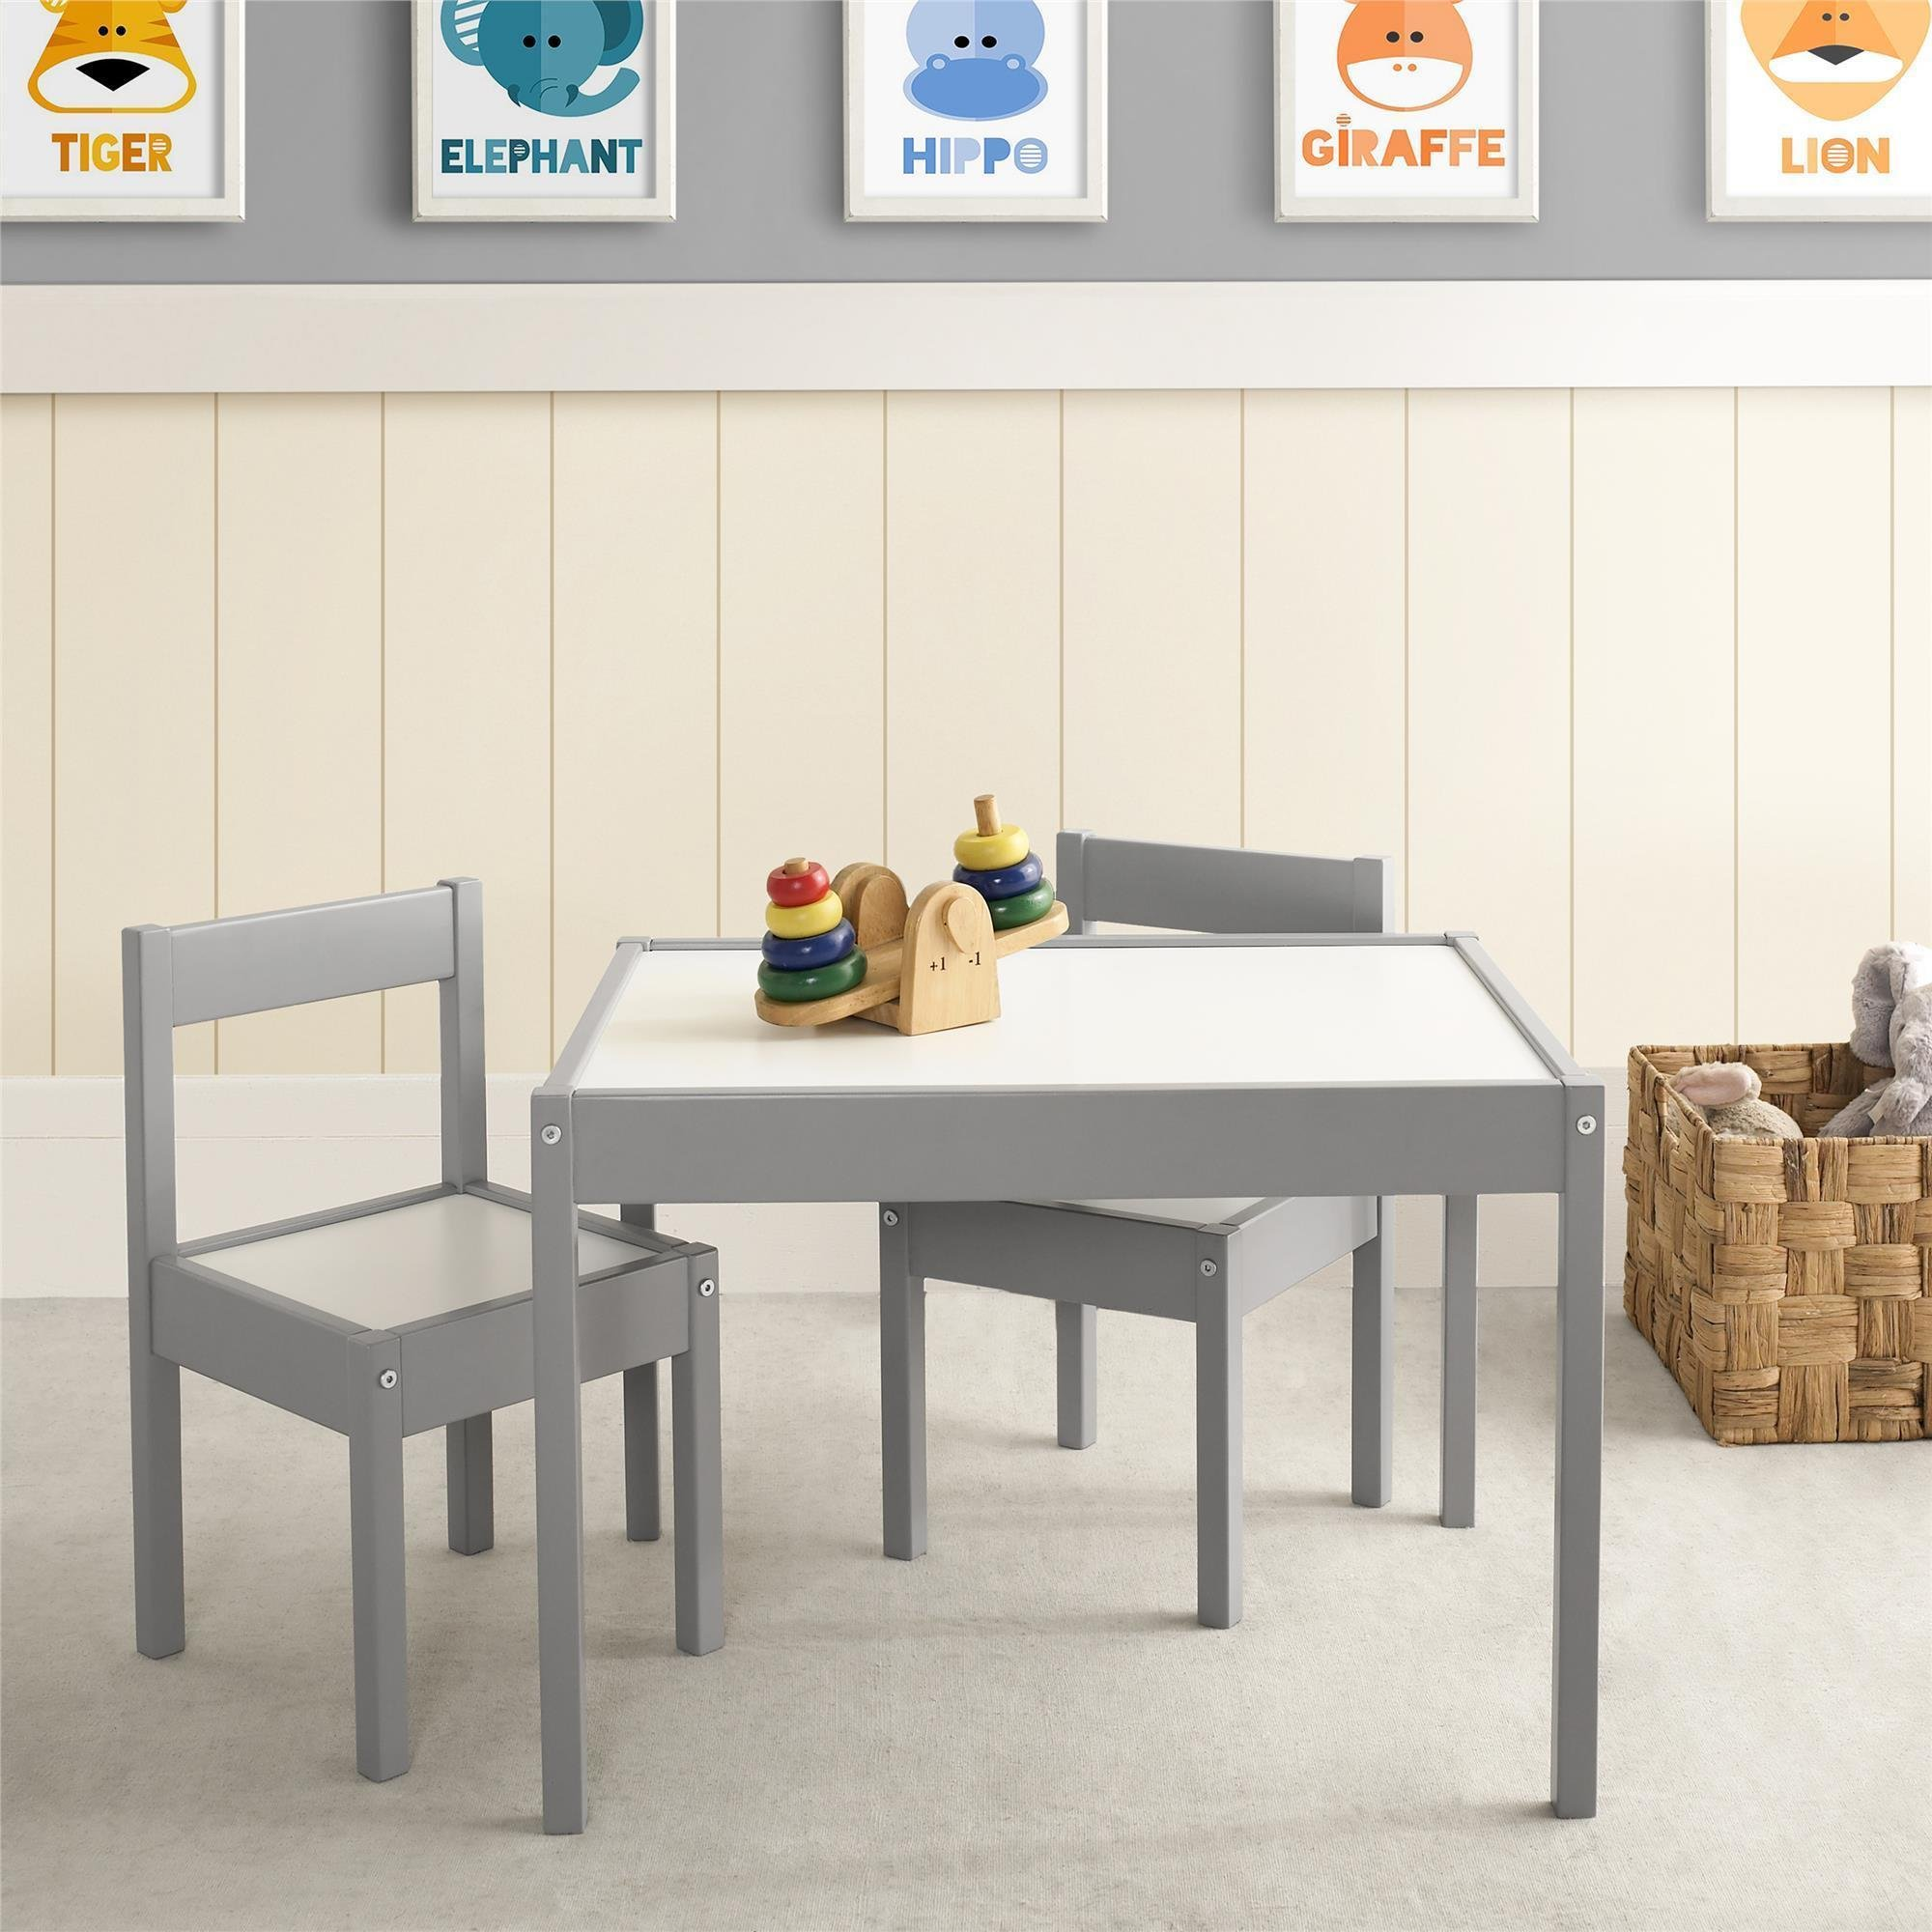 Give Your Kids A Fun Place To Work Avenue Greene Dreama Grey/White Wood 3-piece Kiddy Table and Chair Set Boasta Up To 75 Lbs Weight Capacity - Perfect For Kiddie Meals, Art And Coloring, Playing